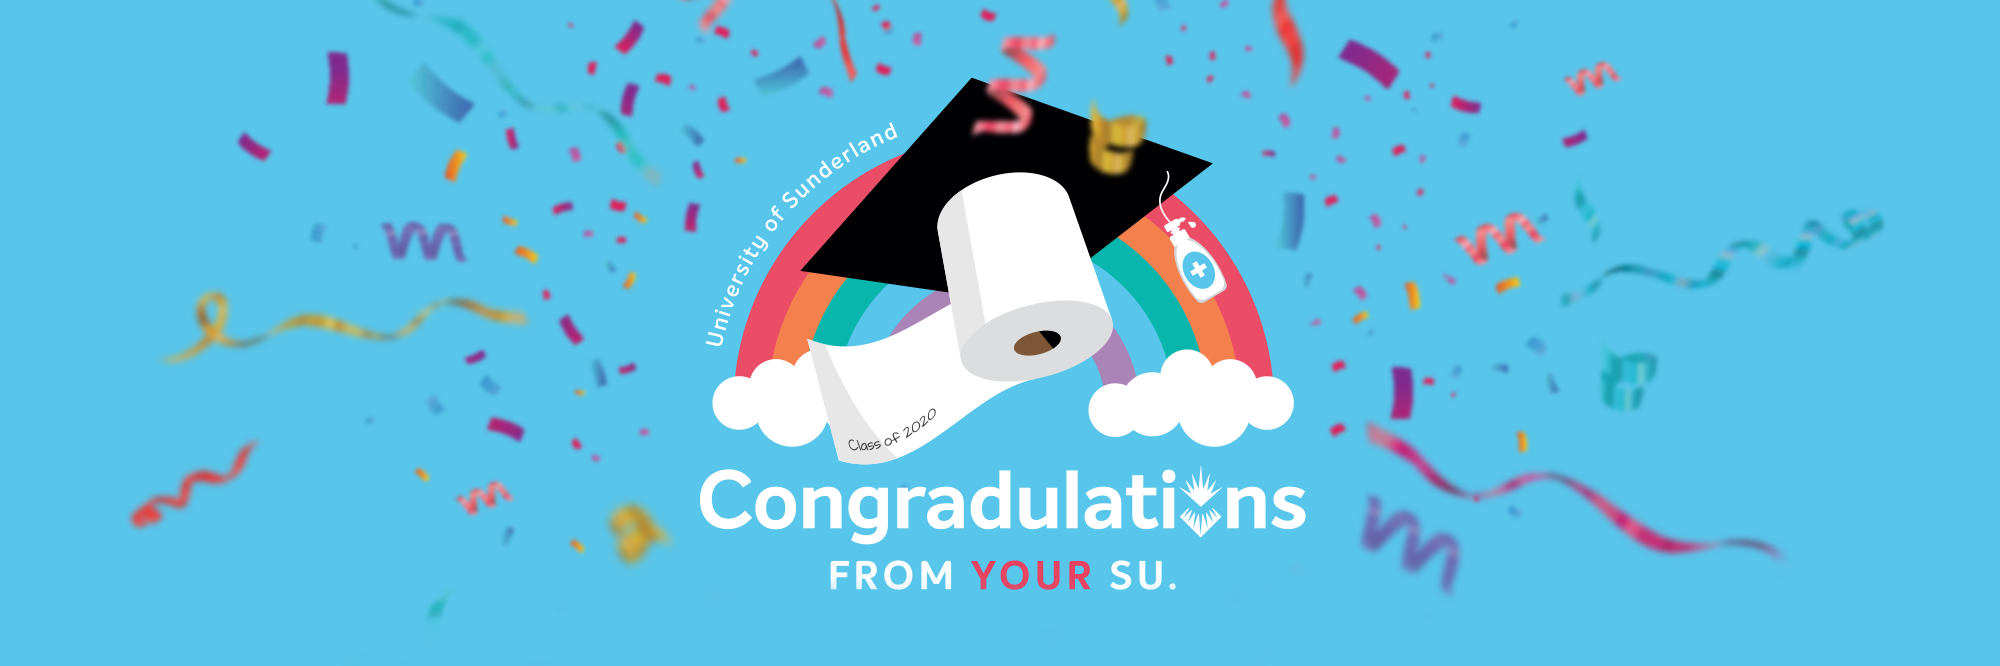 Main web banner congradulations from your su